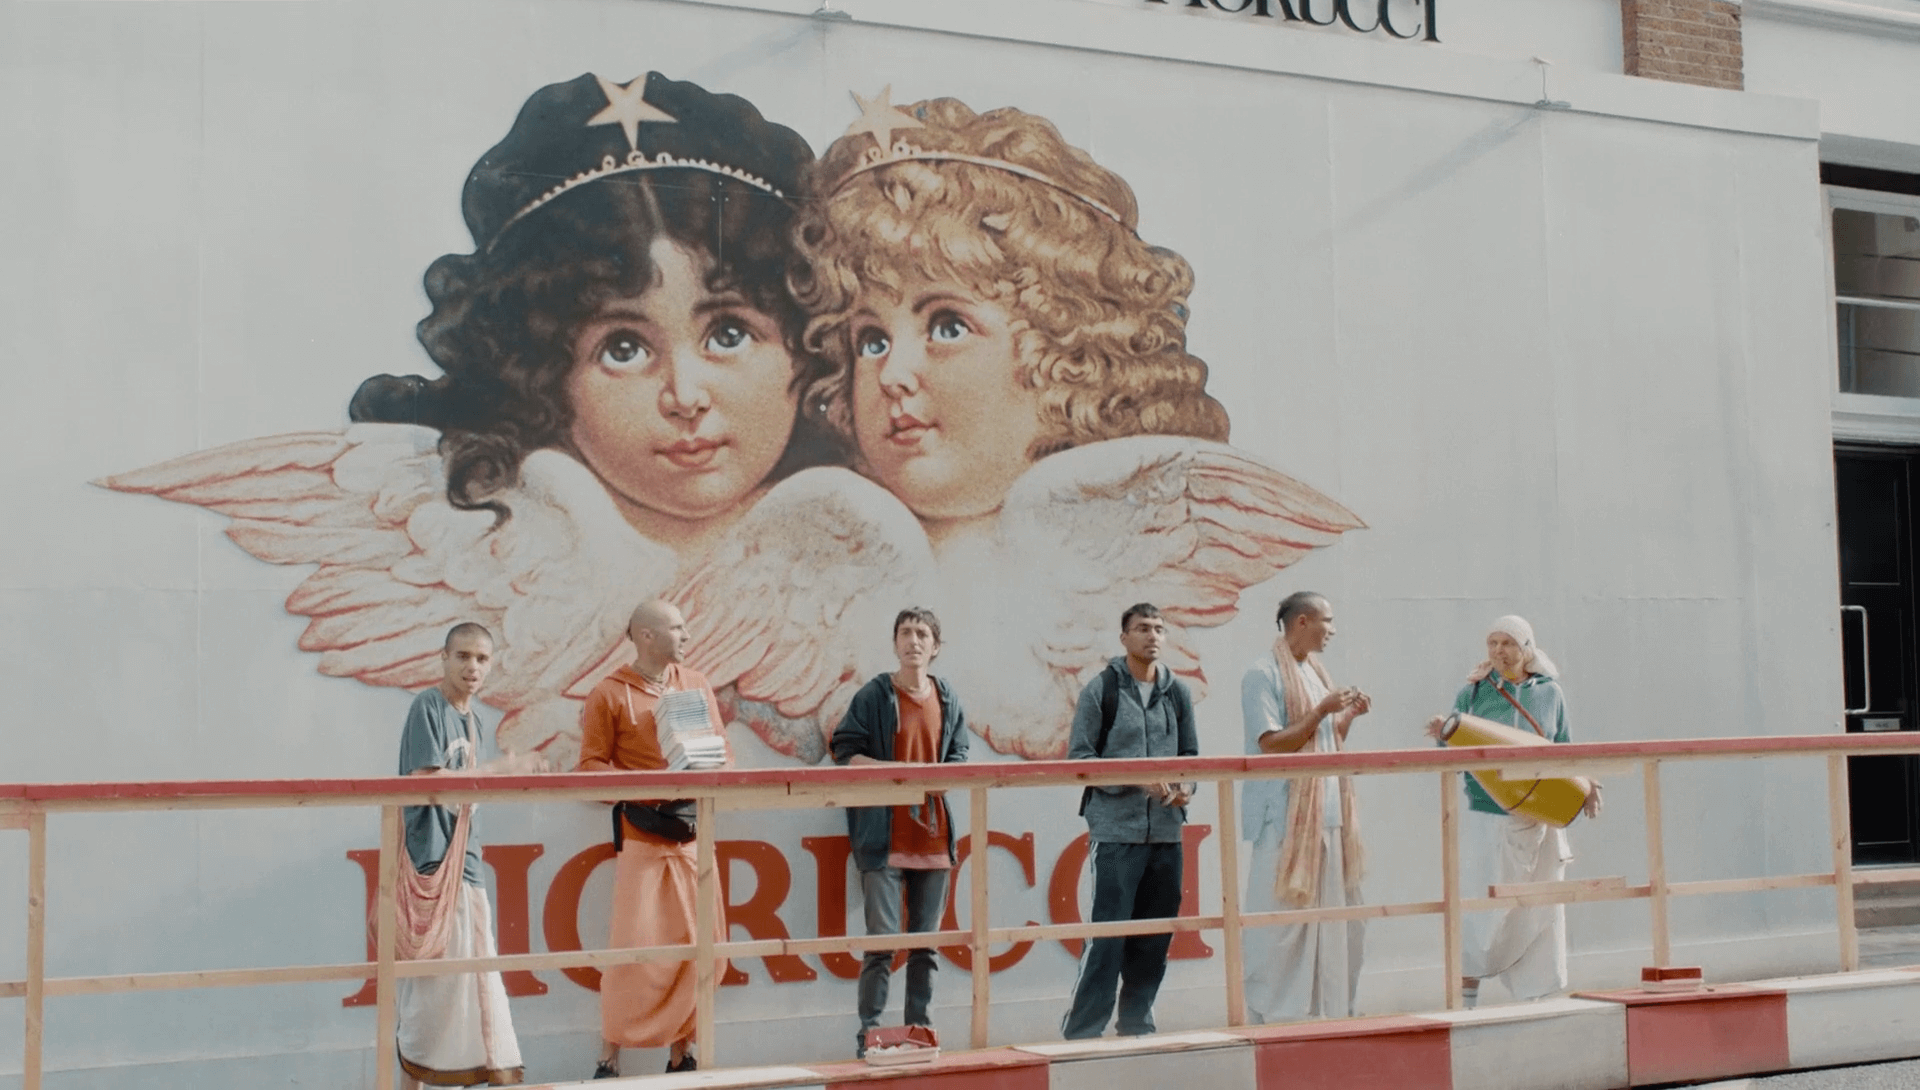 """You Will Be With Us in Paradise"": Dale un vistazo al documental que narra el histórico comeback de Fiorucci"